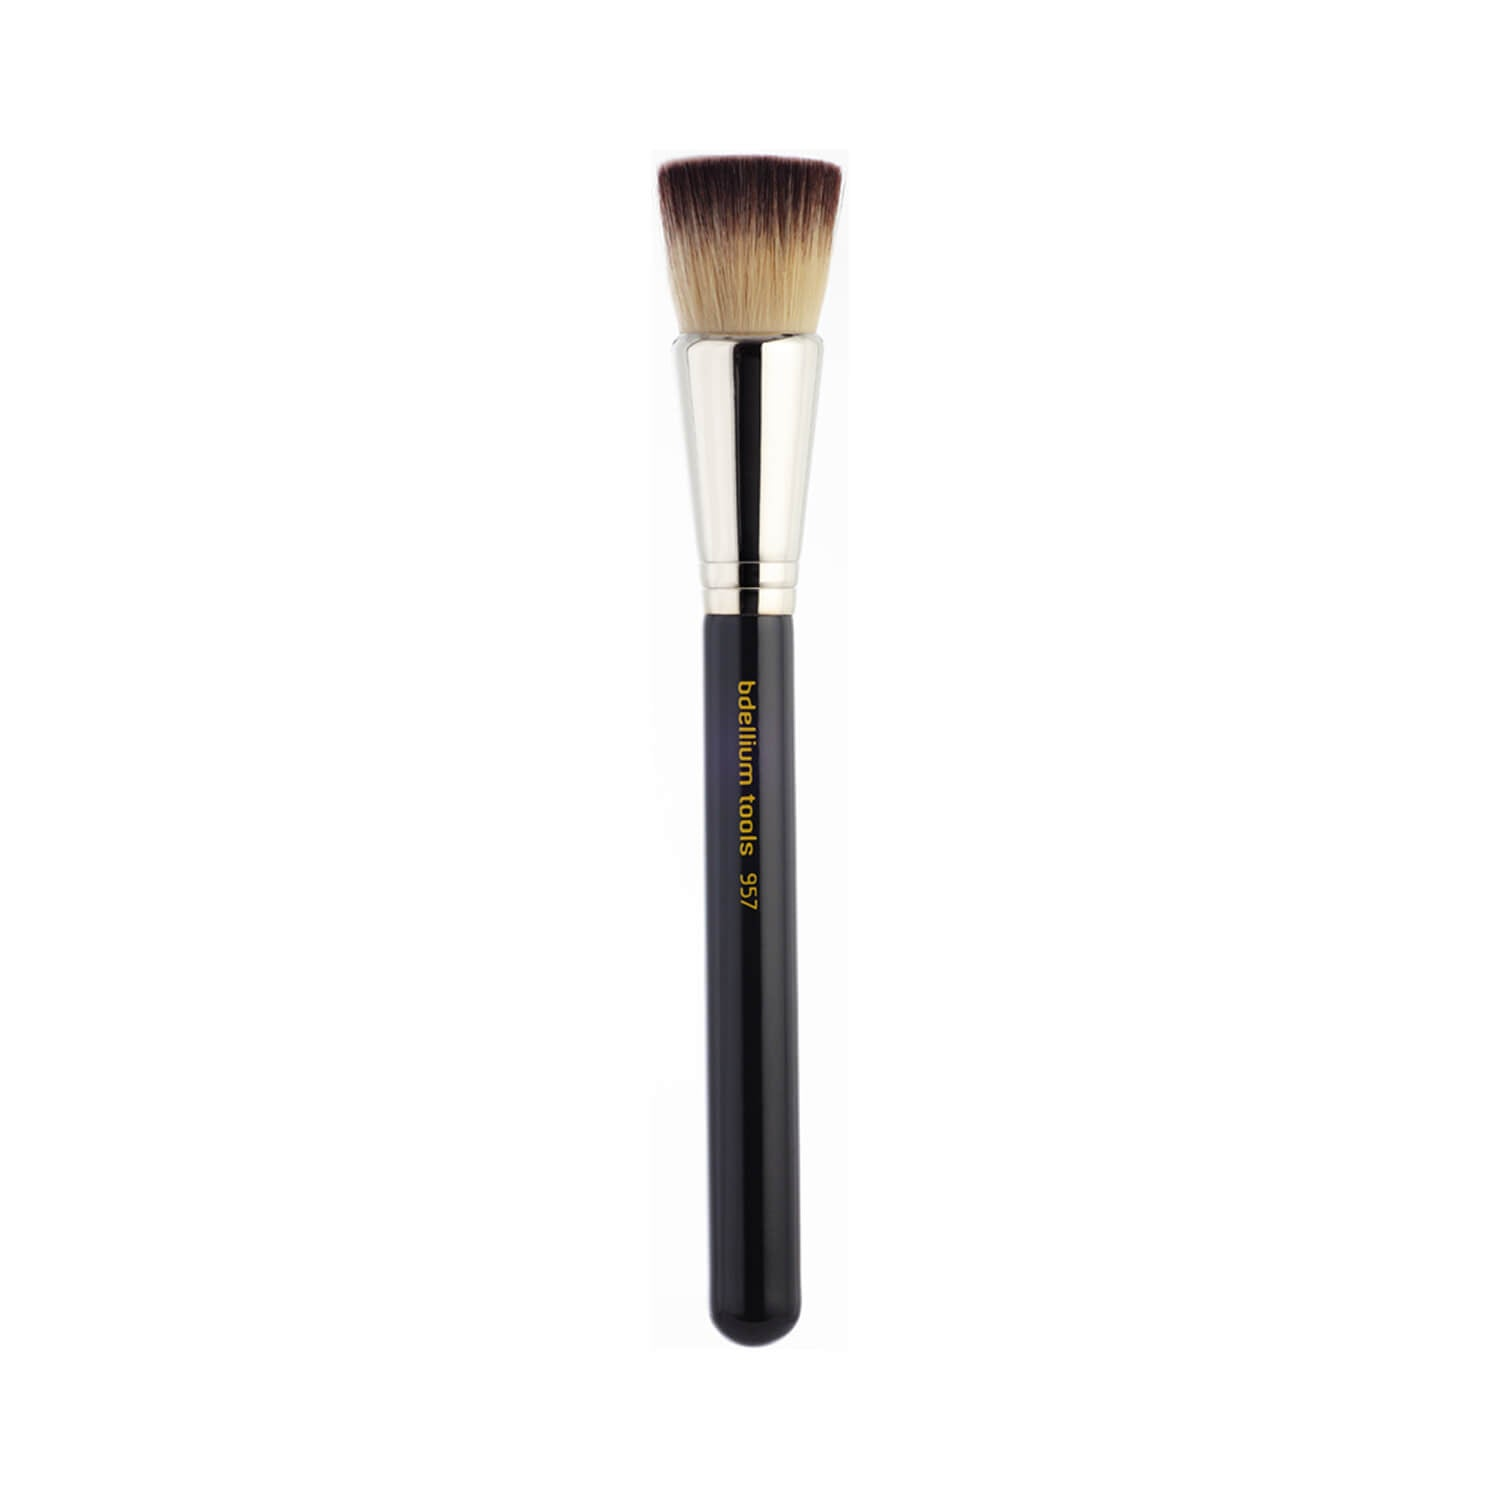 BDellium Tools Maestro Line 957 Precision Kabuki Brush Black